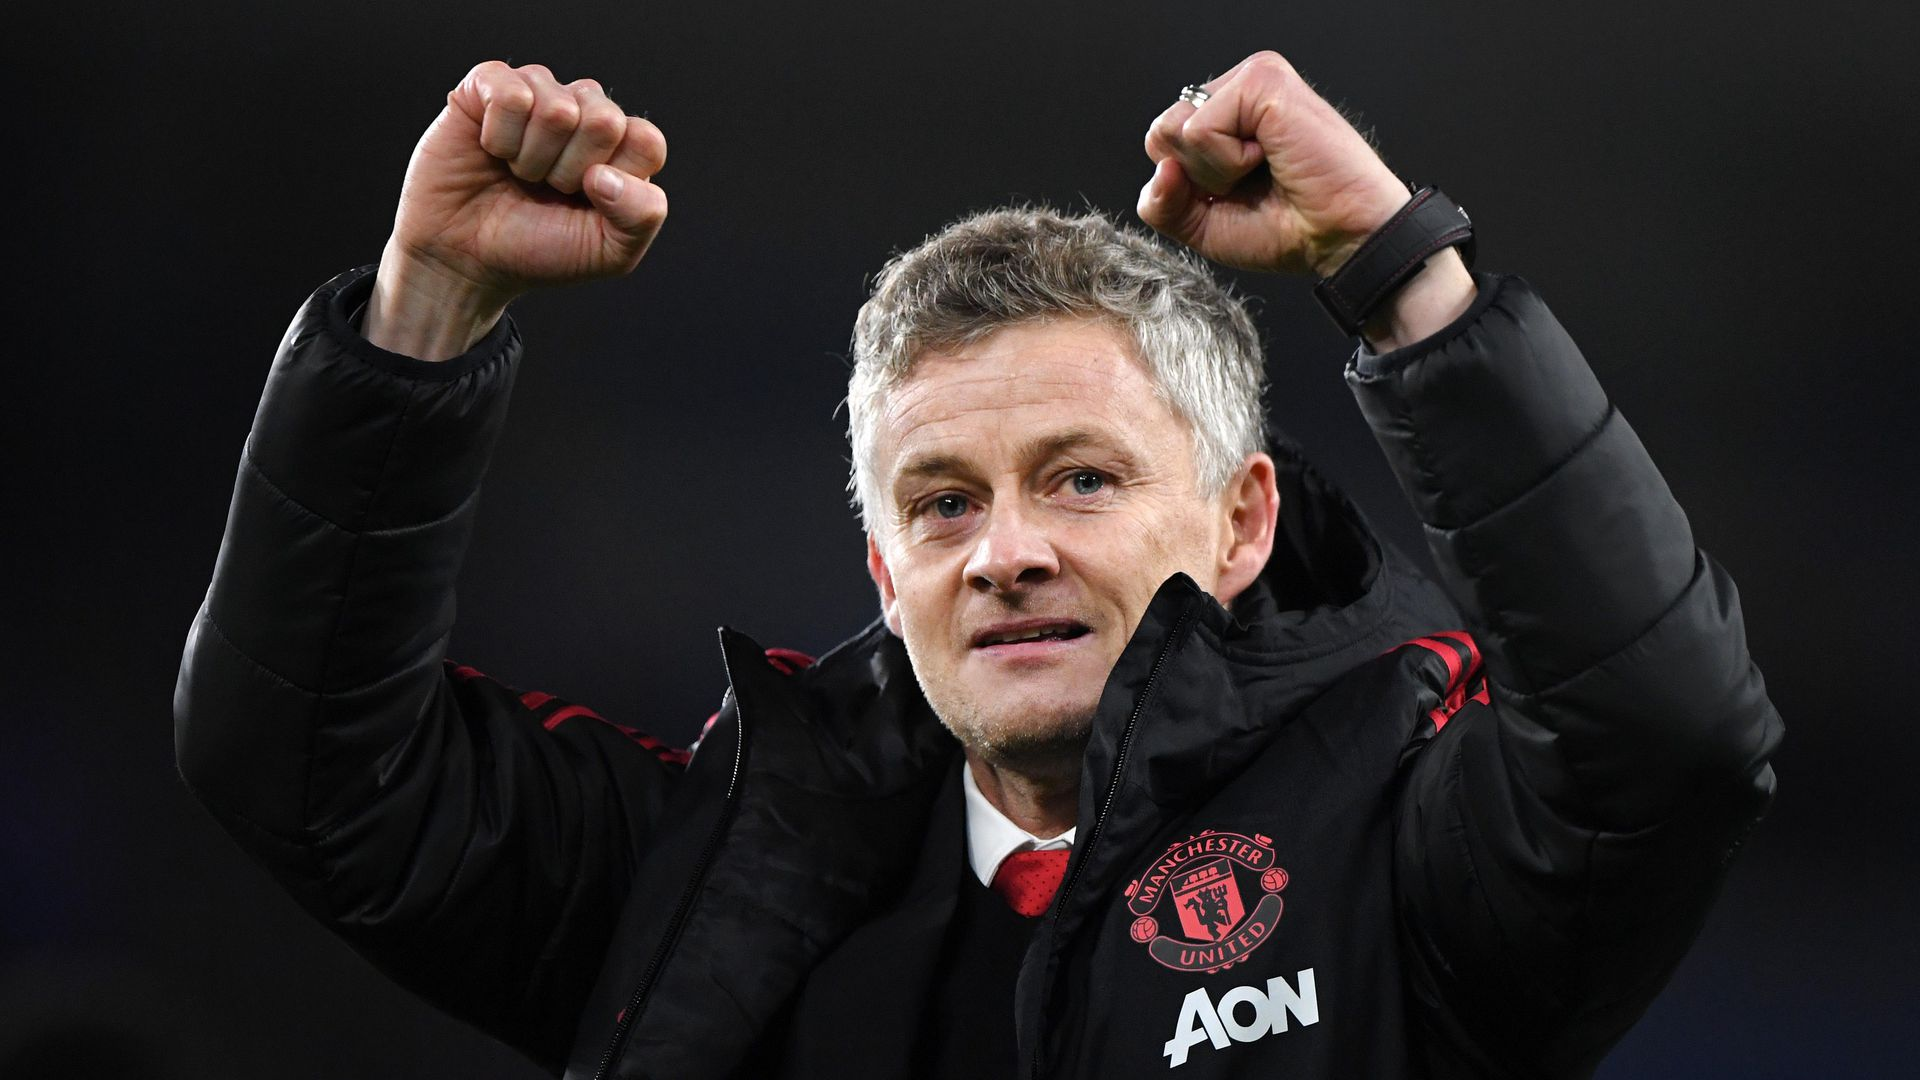 Man Utd 'make final decision' on Ole Gunnar Solskjaer sacking after laying out project